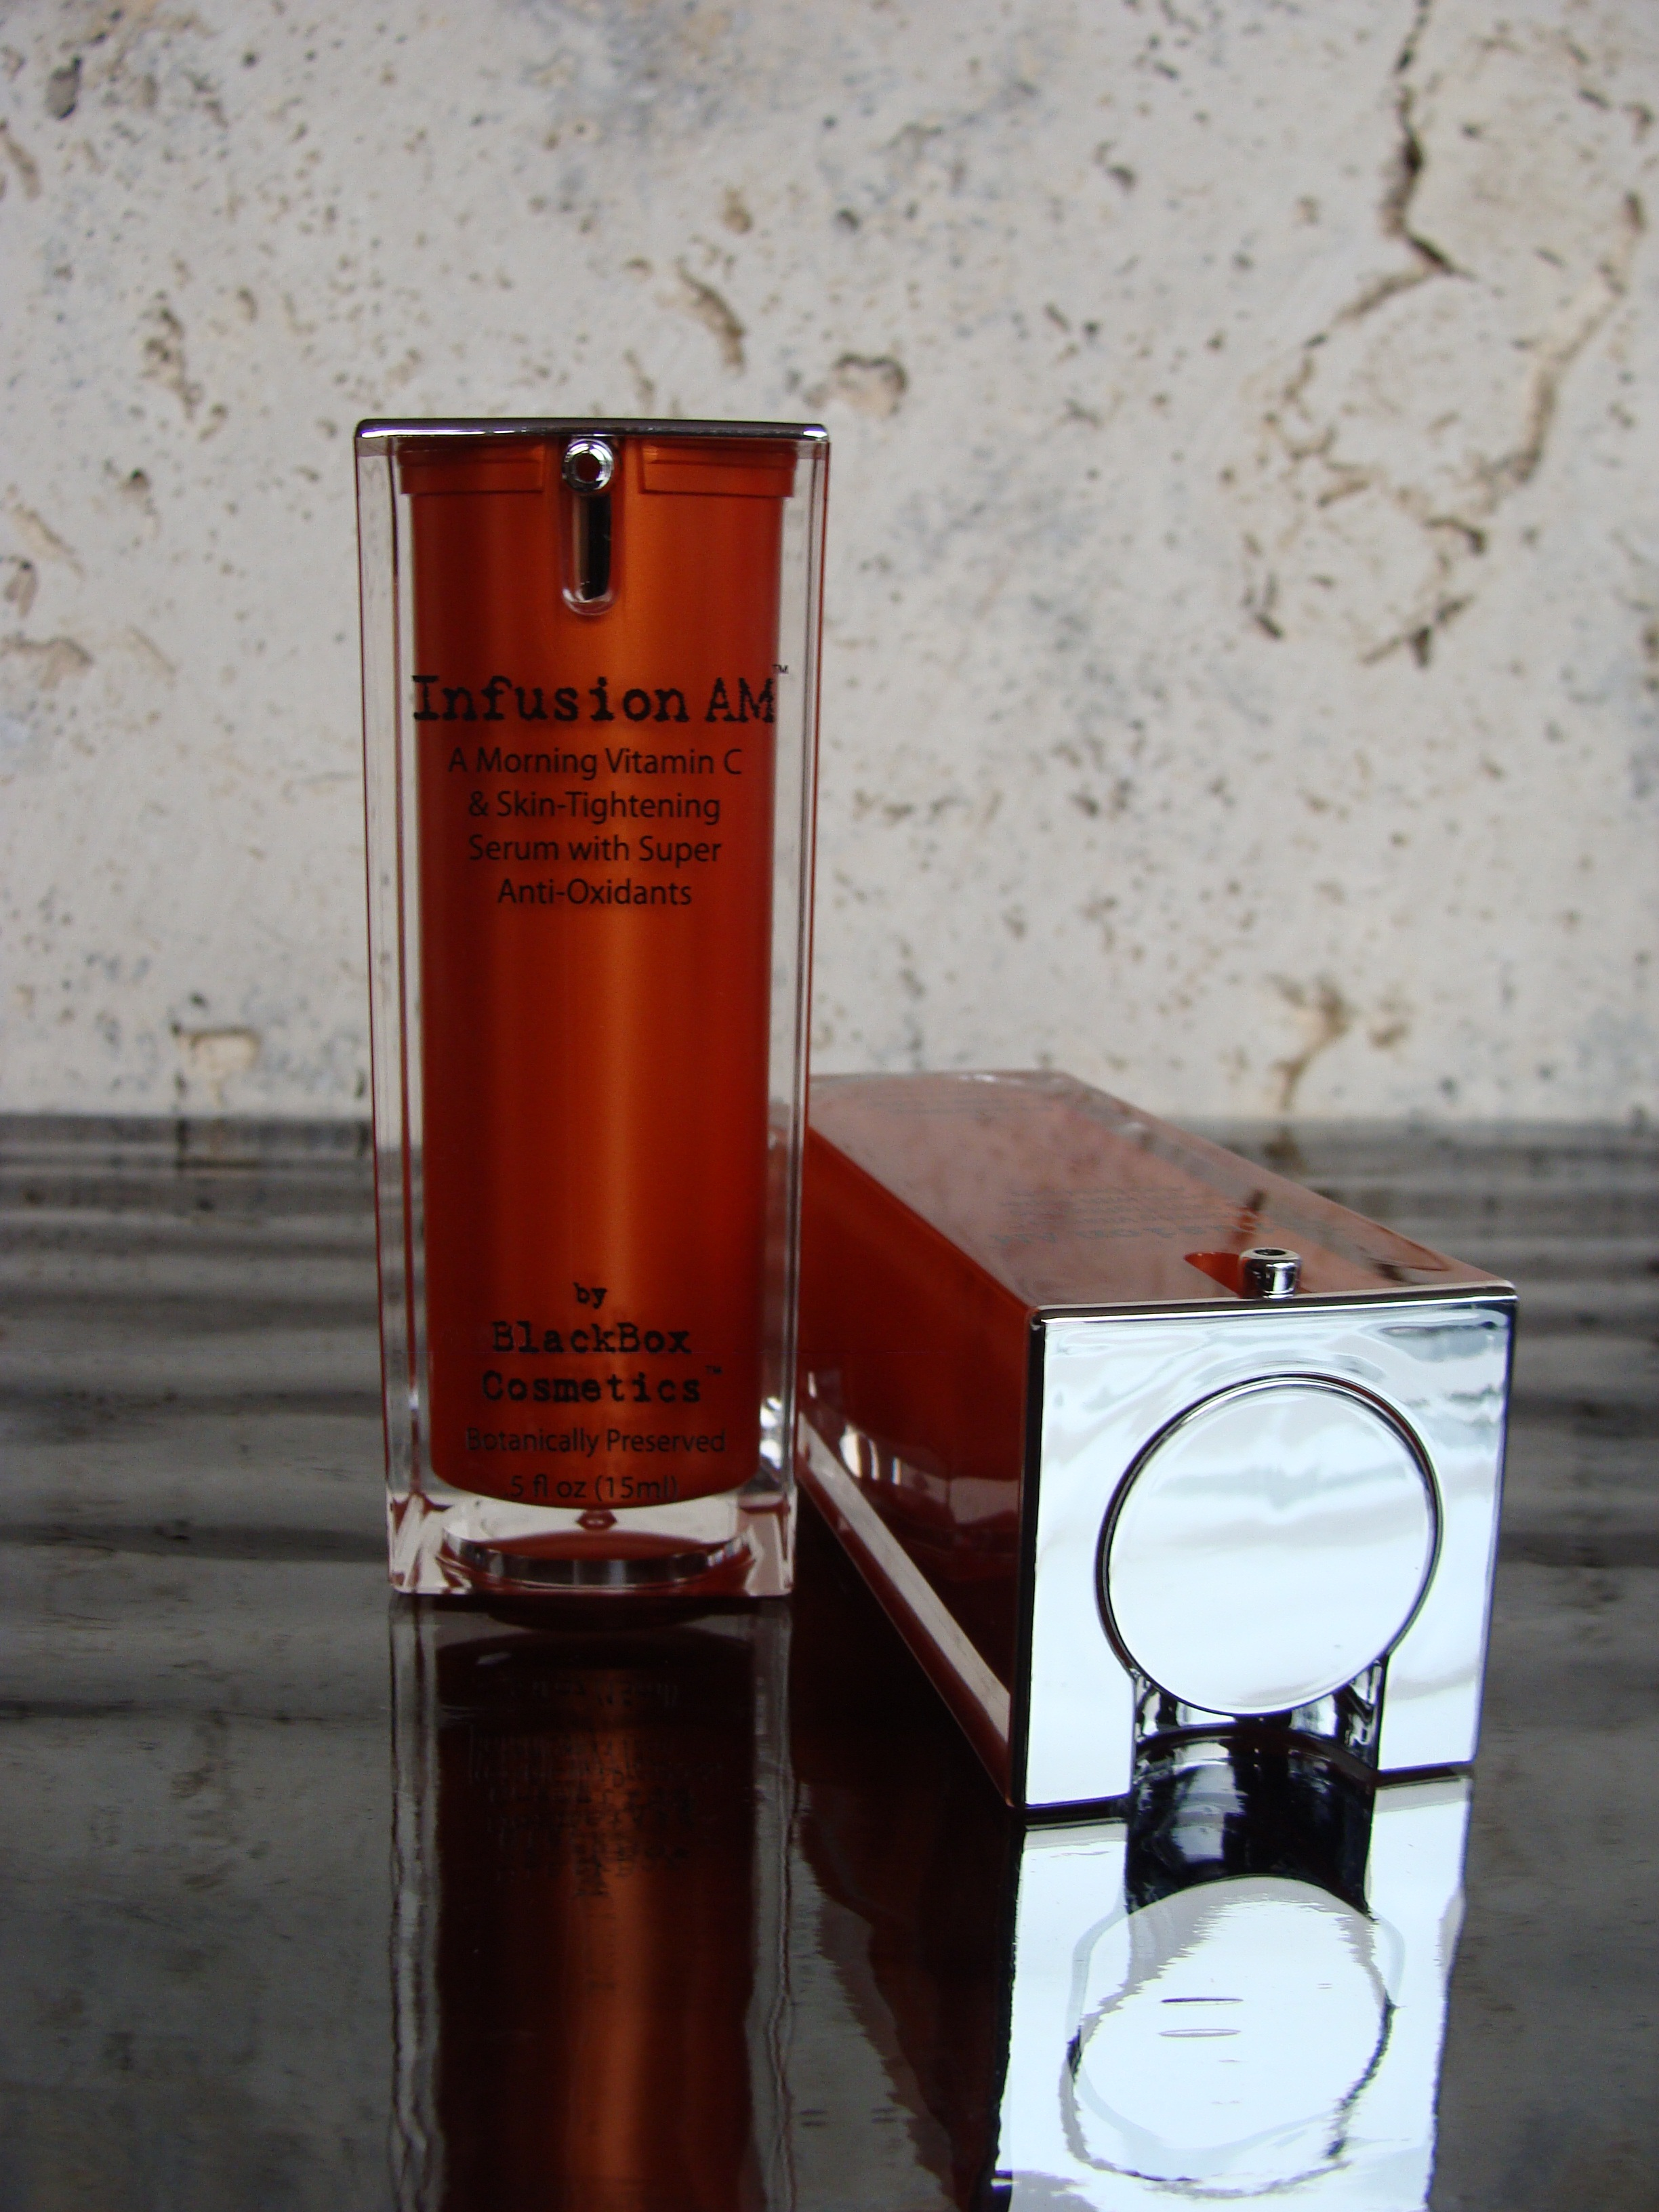 BlackBox Cosmetics Infusion AM